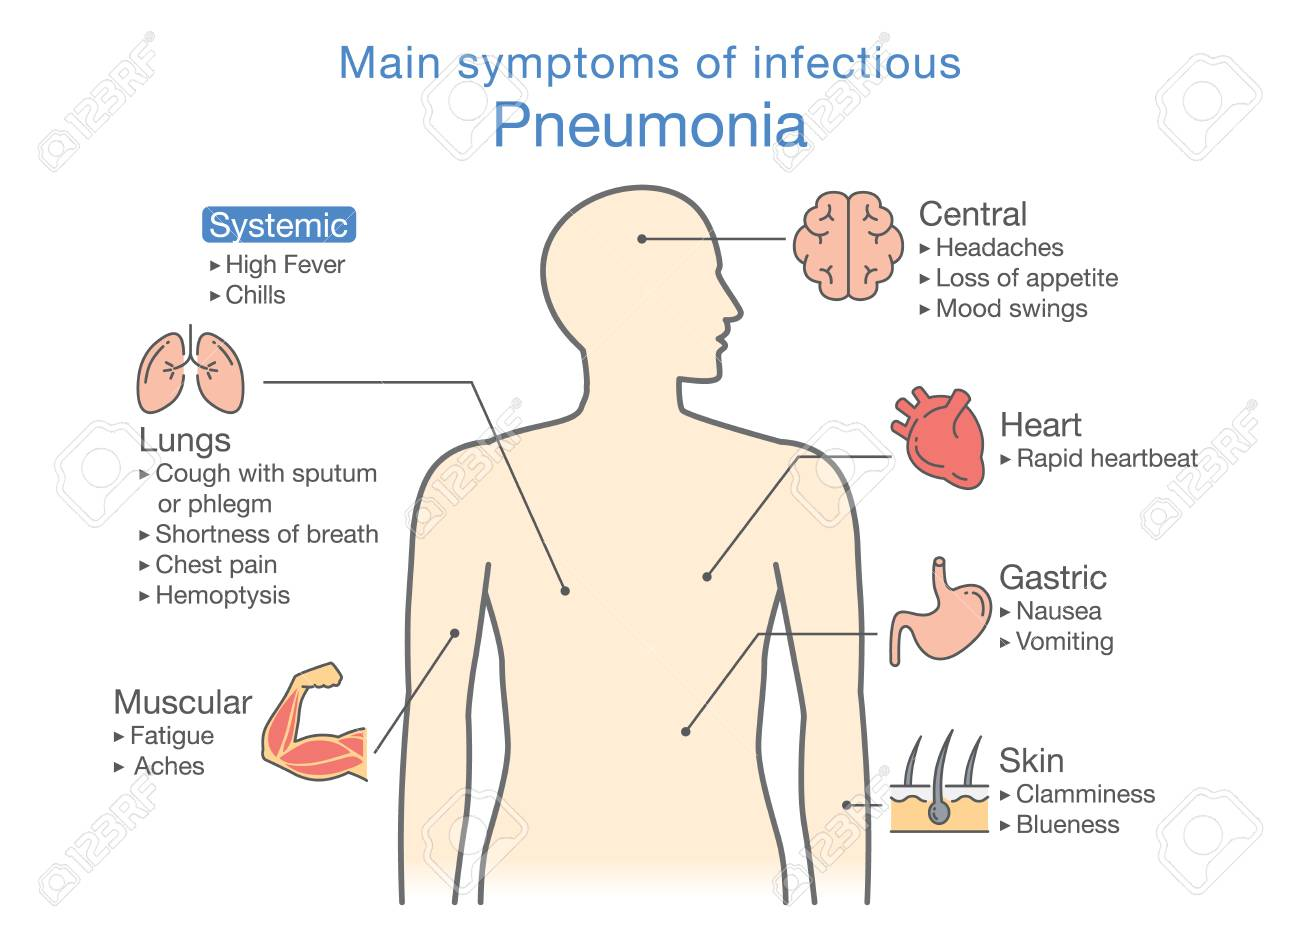 hight resolution of main symptoms of infectious pneumonia illustration about diagram for health check up stock vector